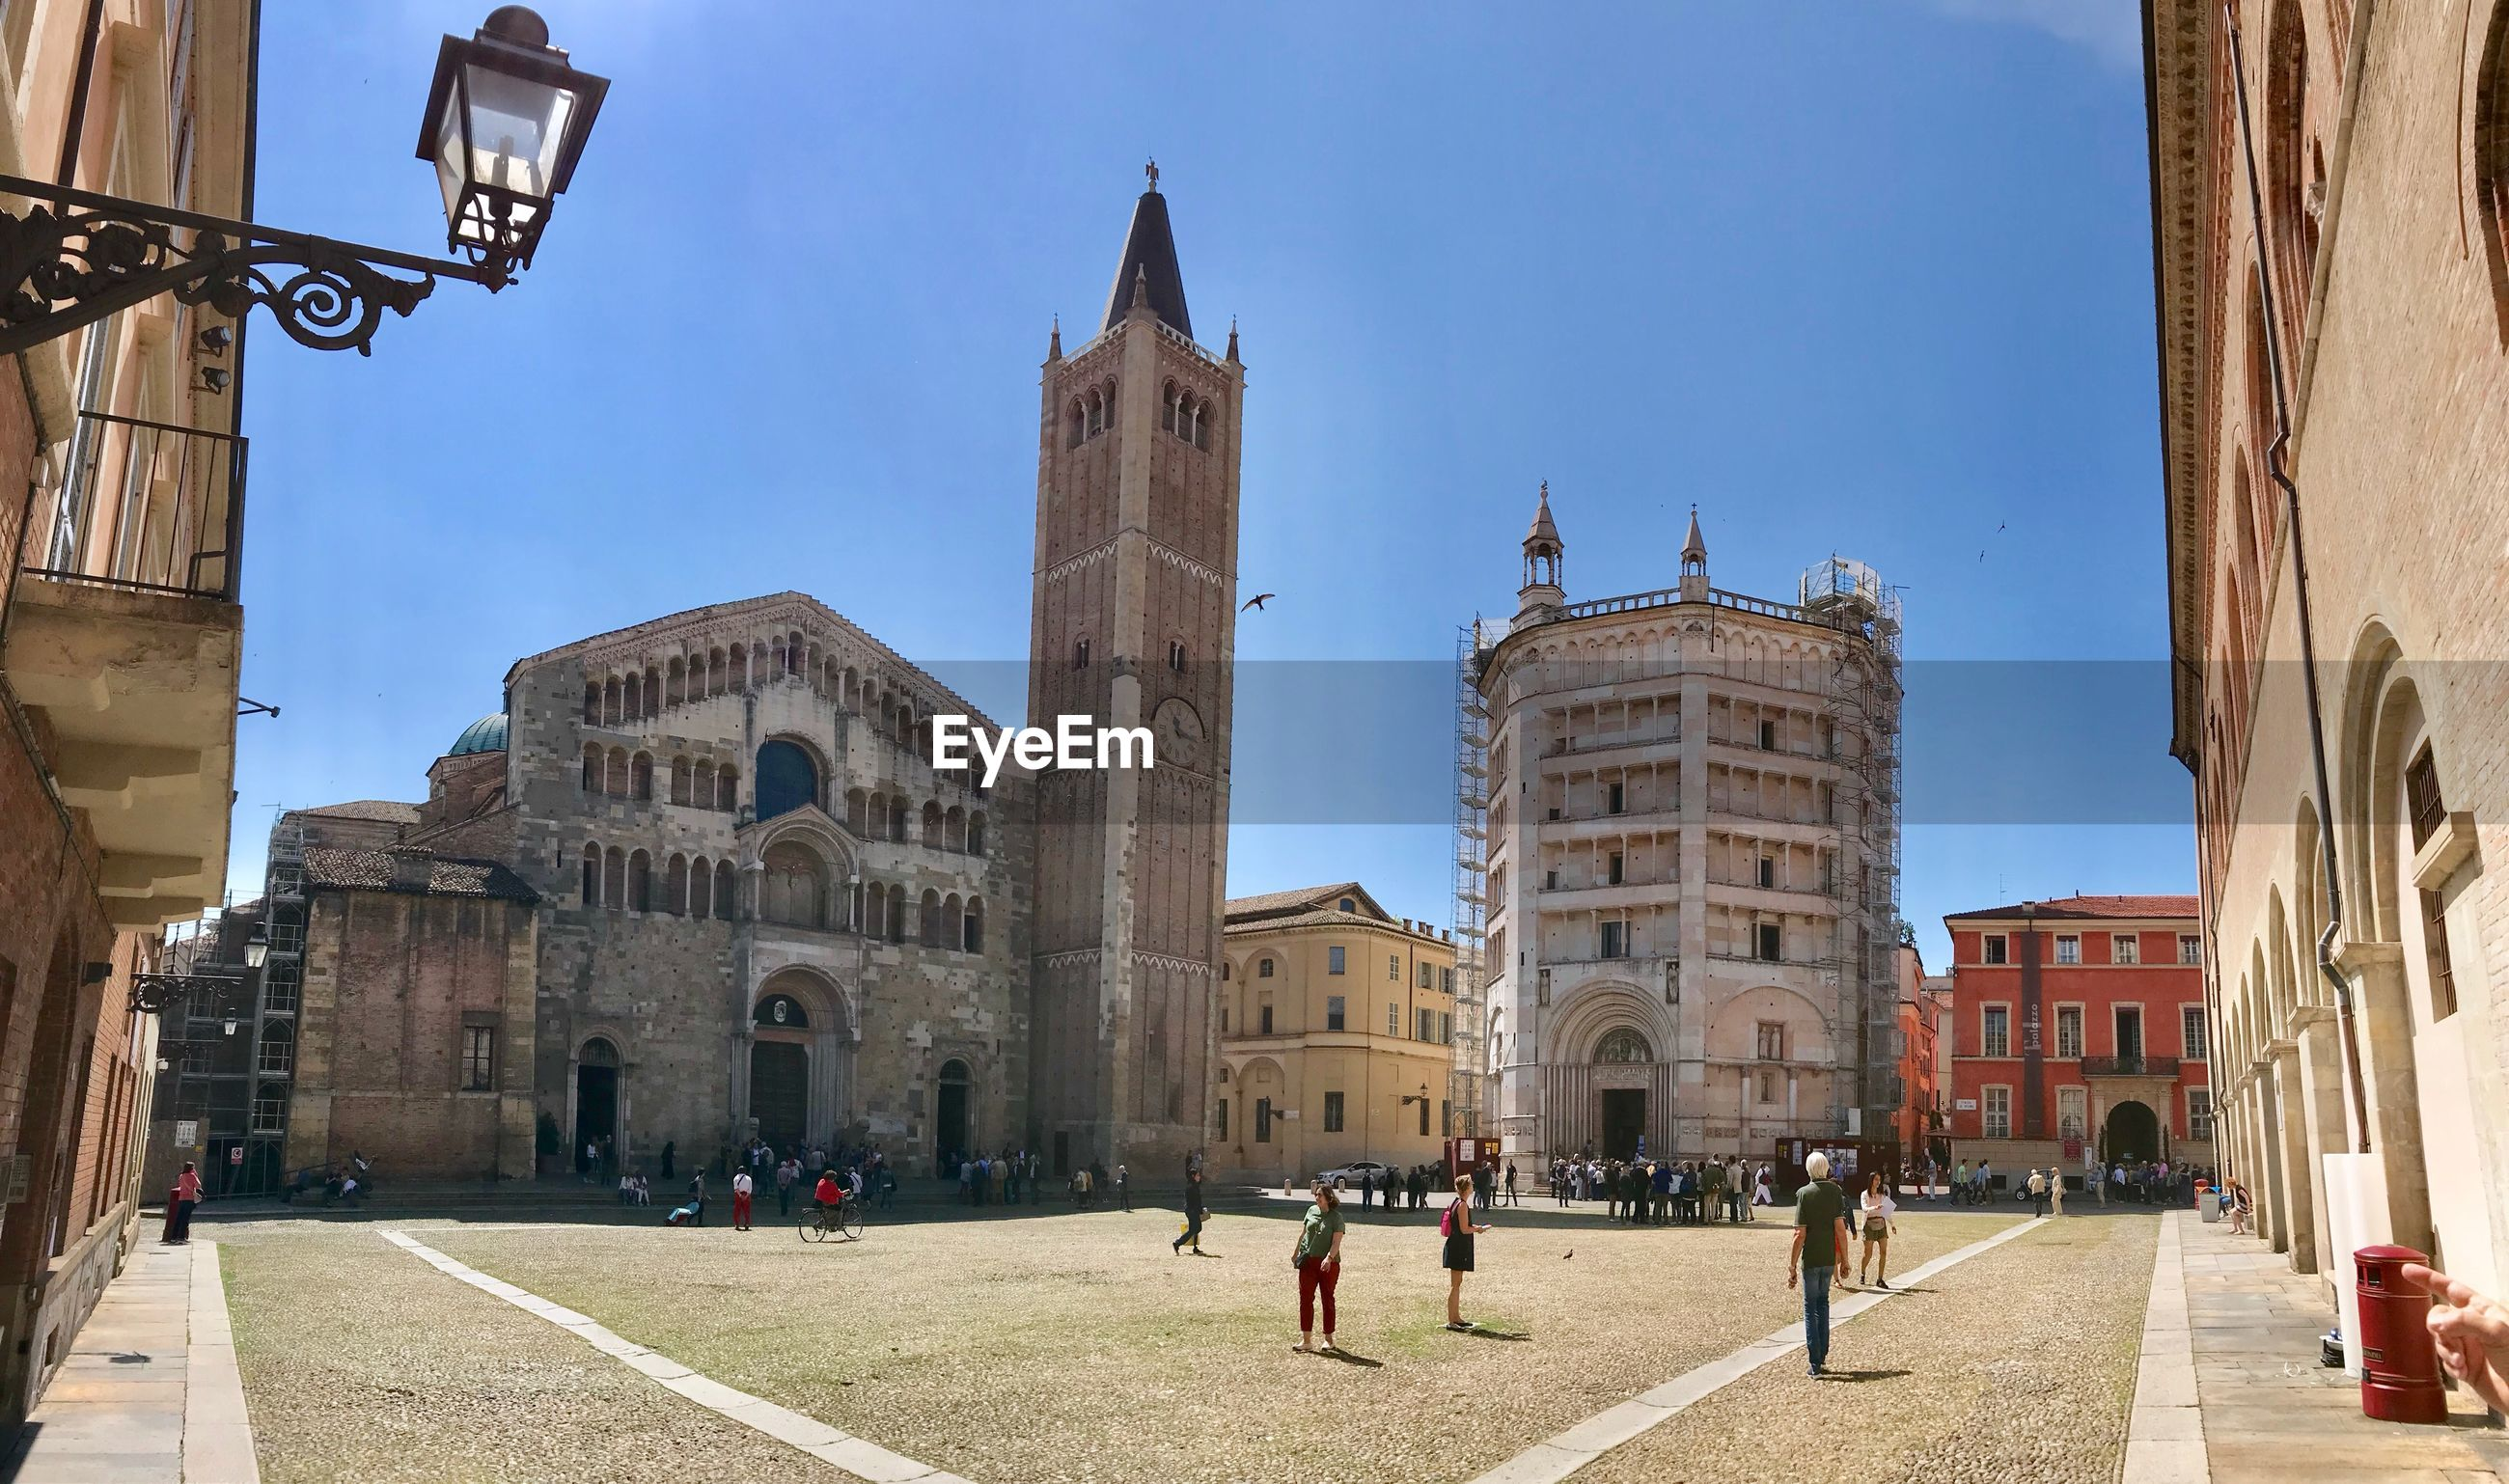 PANORAMIC VIEW OF BUILDINGS AGAINST CLEAR SKY